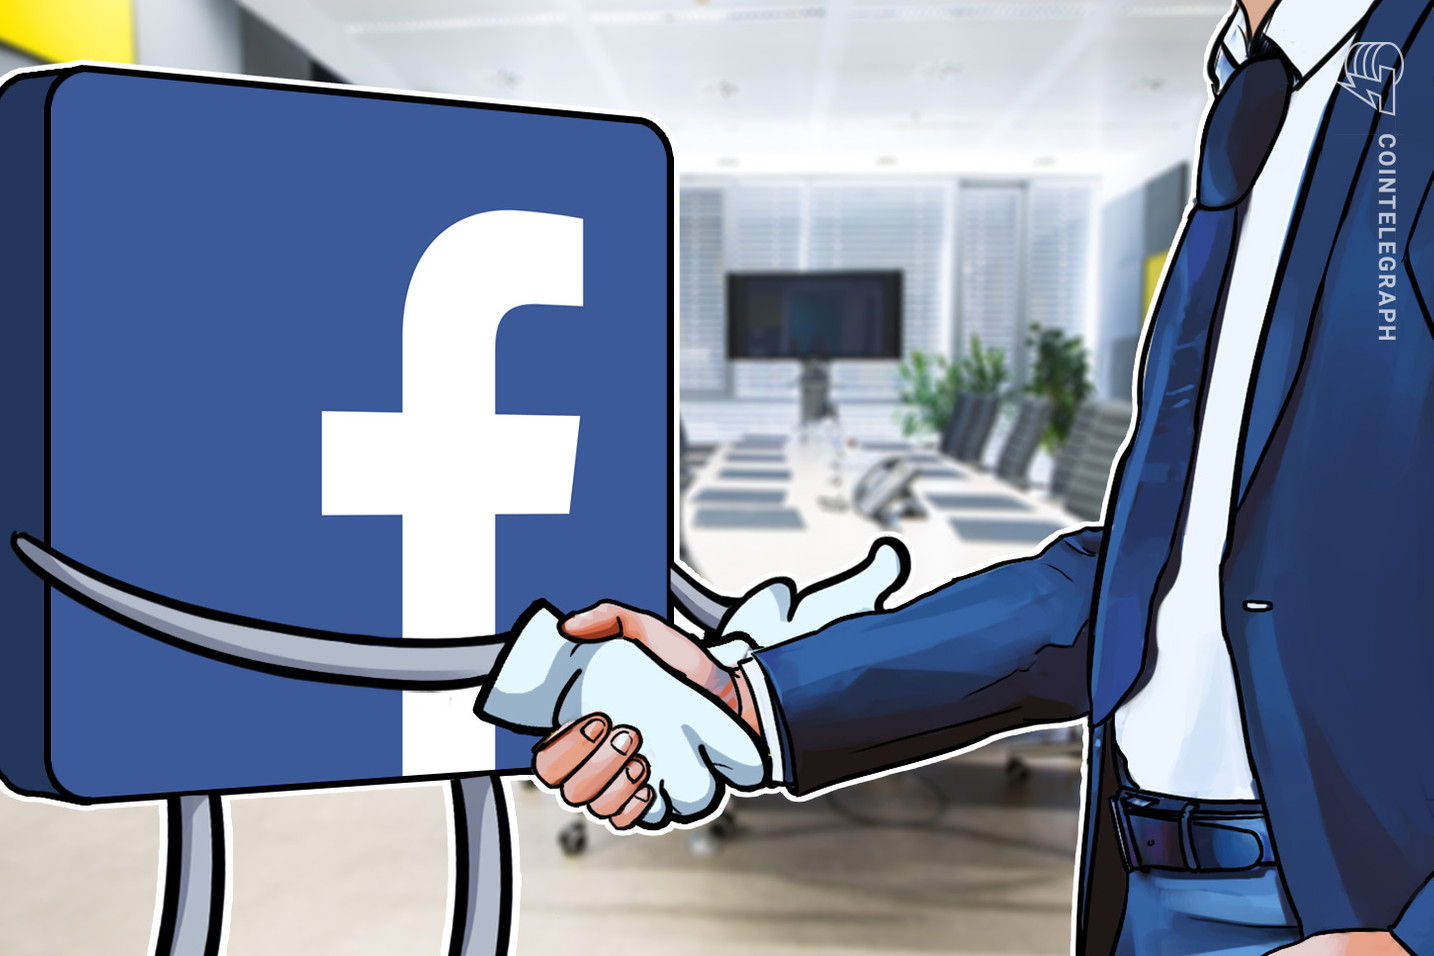 US Fed Chair: Facebook's Libra Carries Both Benefits and Risks